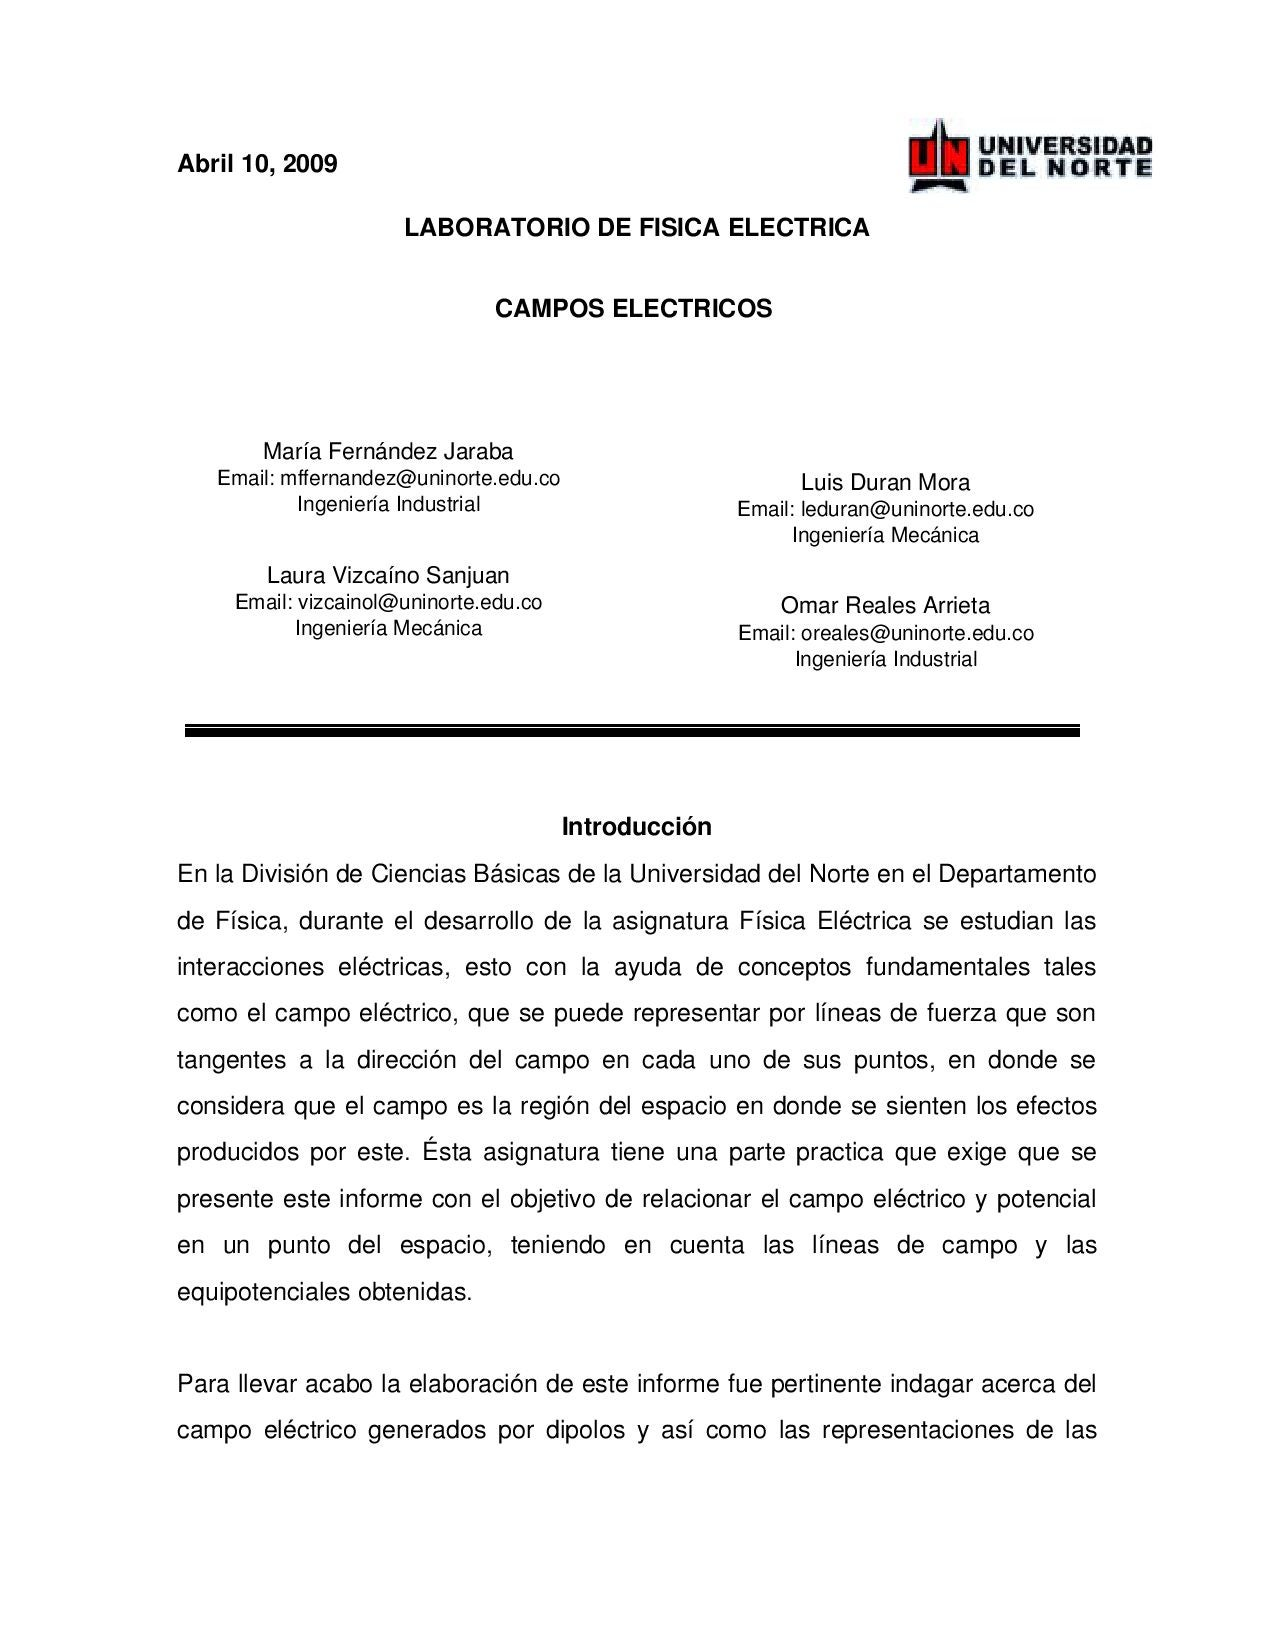 Informe de laboratorio: Campo electrico by Omar Reales - issuu